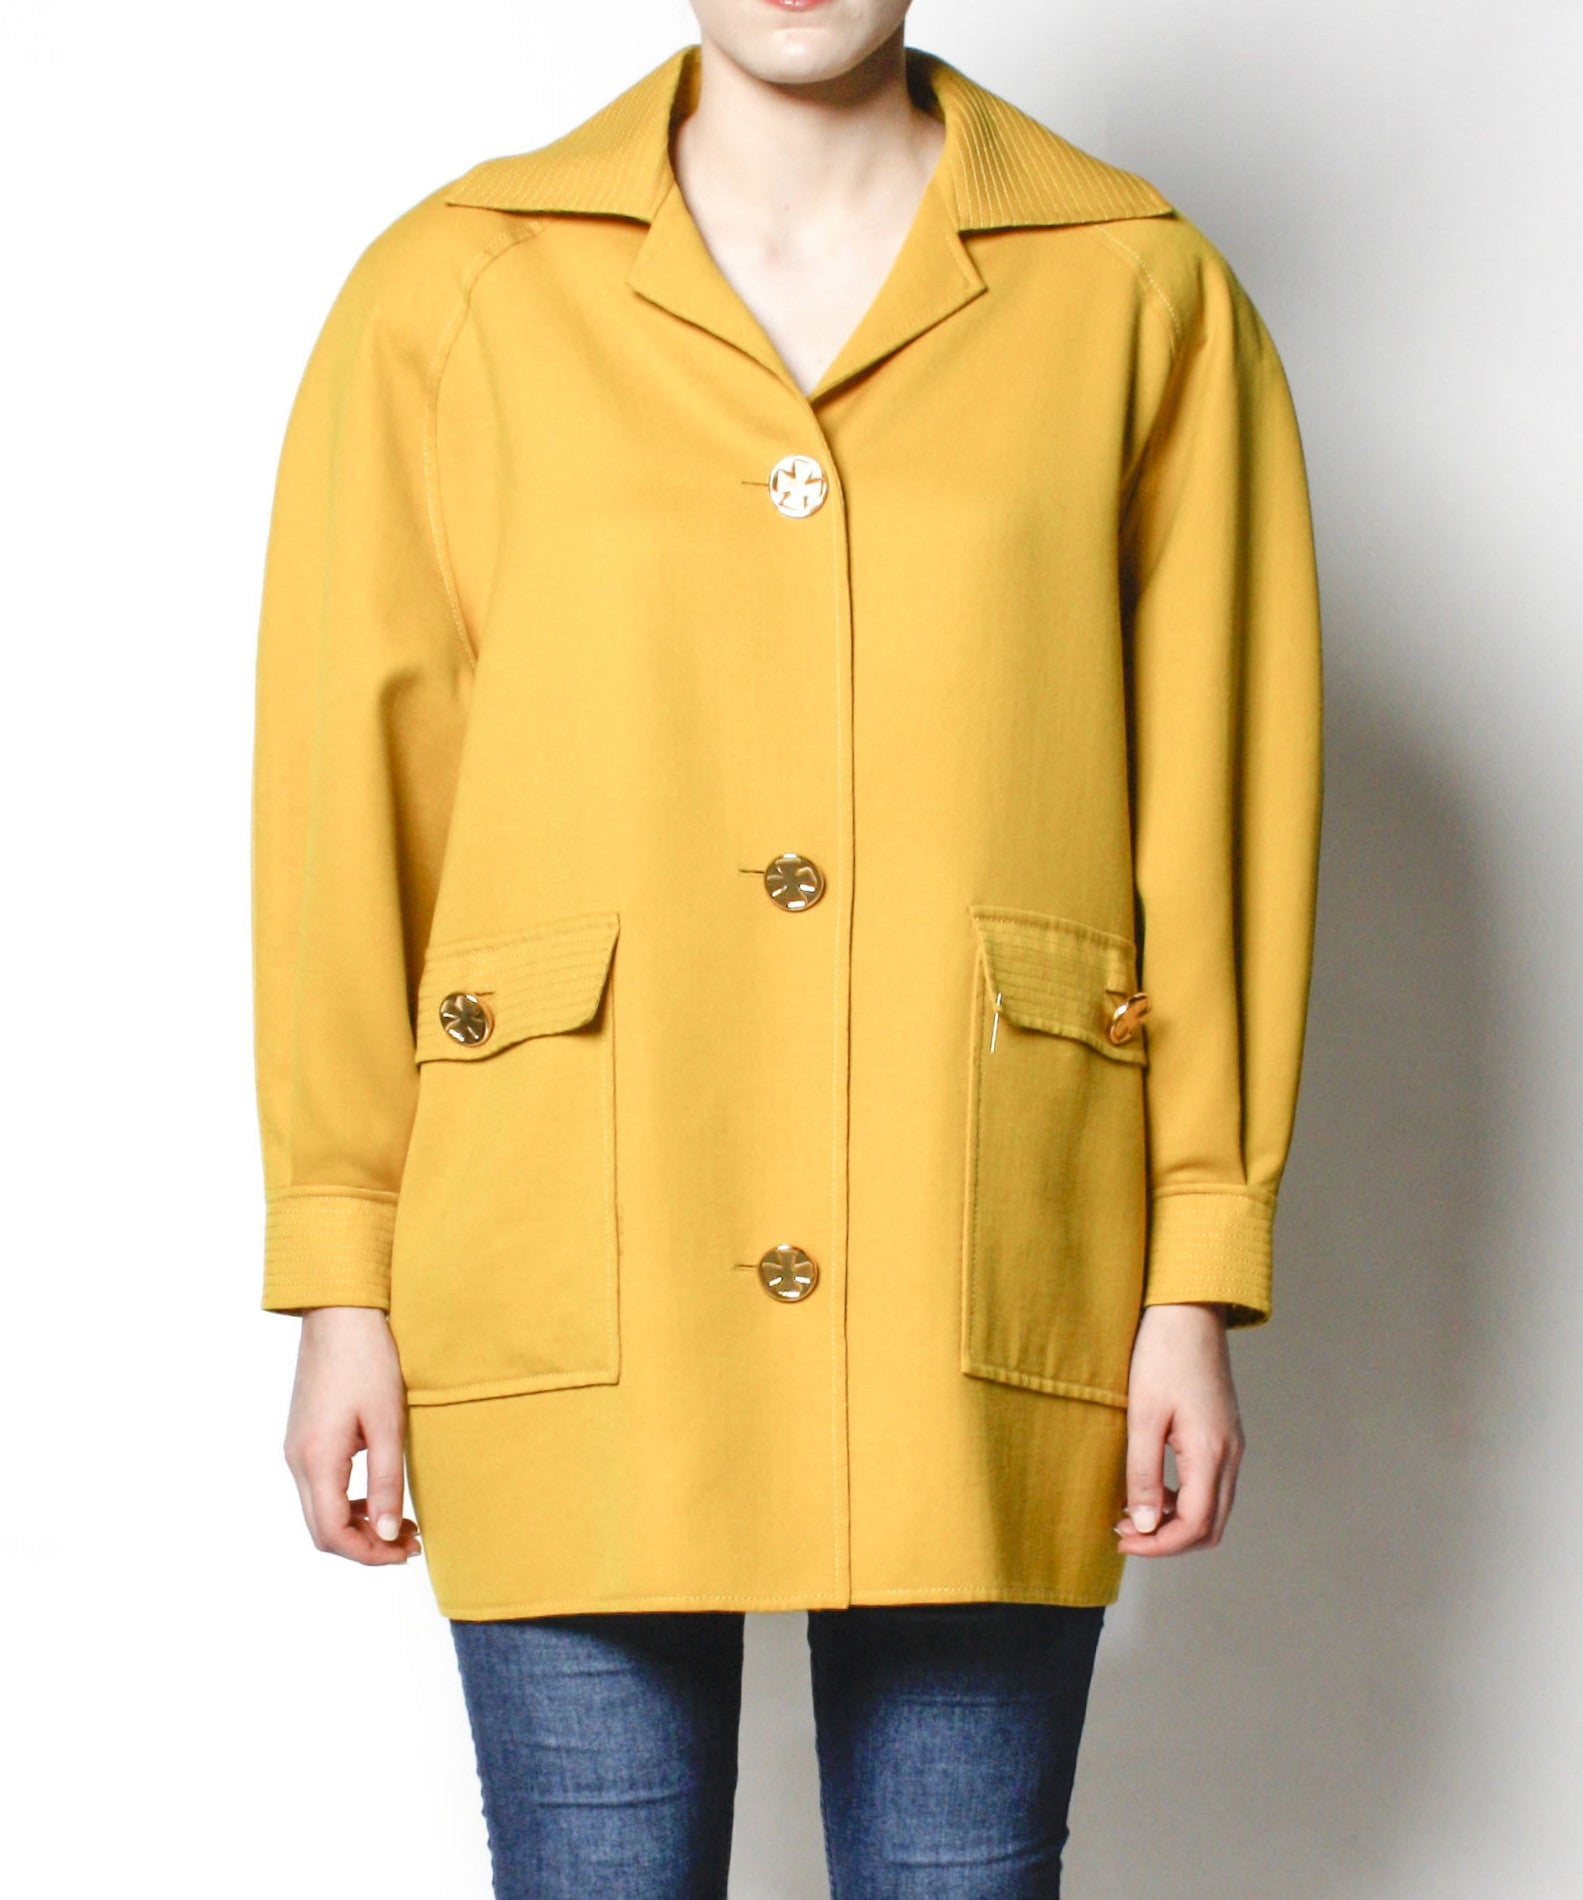 1980s Vintage Christian Lacroix Mustard Yellow Jacket – C.Madeleine's